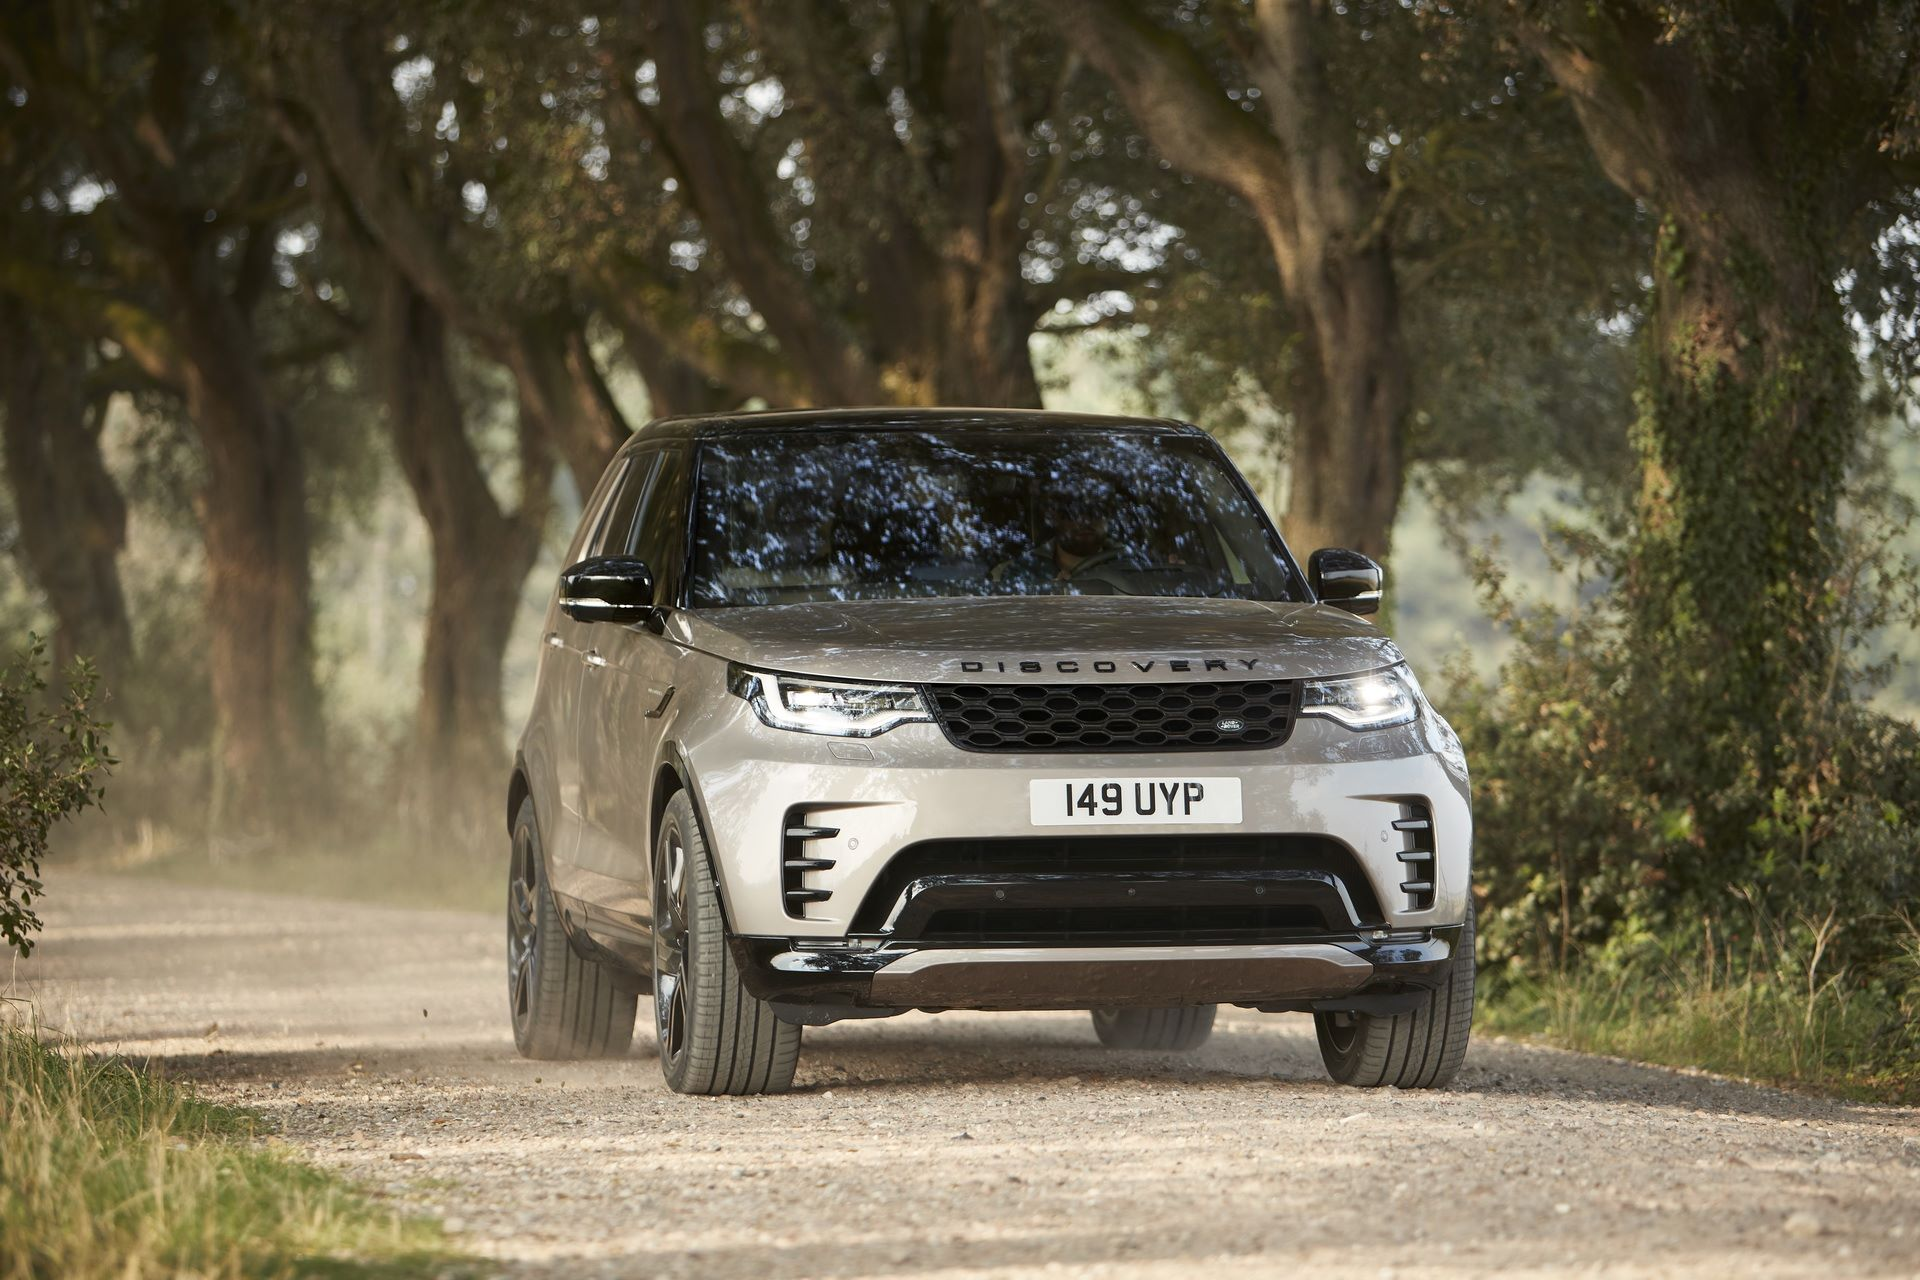 2021-Land-Rover-Discovery-26-1